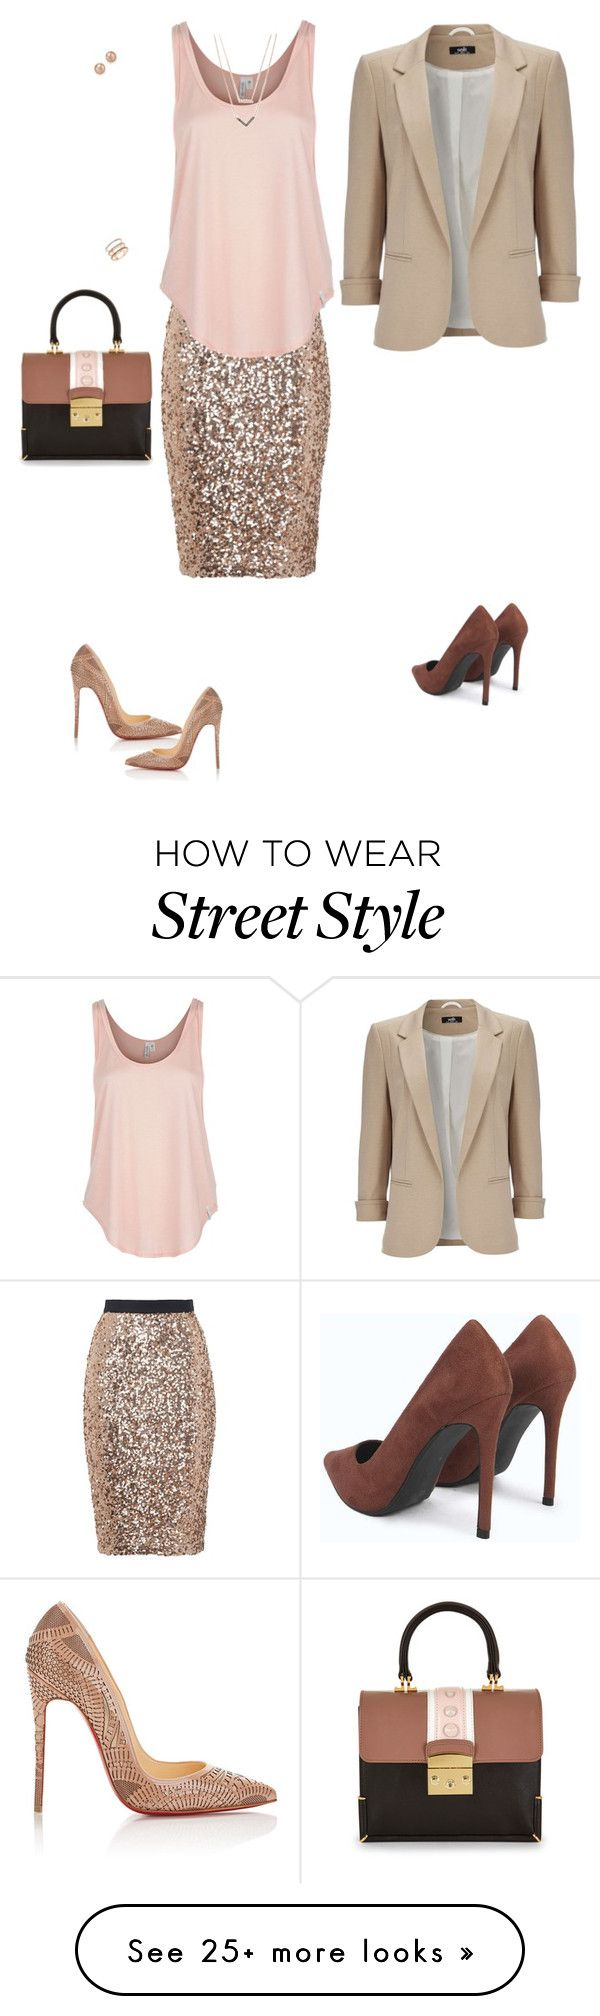 """Holiday style"" by mariesipova on Polyvore featuring French Connection, Rip Curl, Wallis, Christian Louboutin, Michael Kors, EF Collection, Bloomingdale's, skirt, evening and holiday"